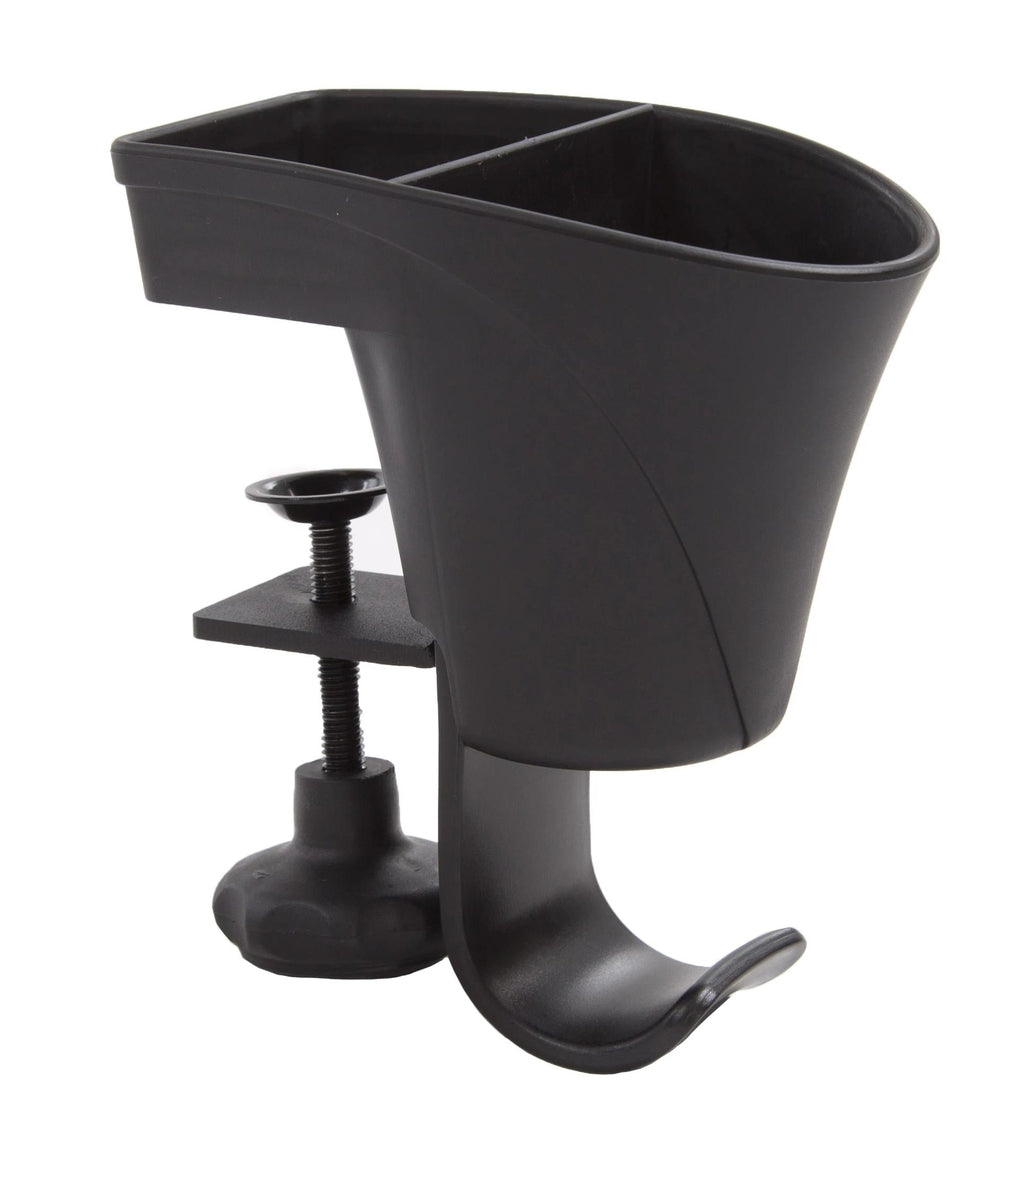 Stand Steady Pen Cup Desk Storage